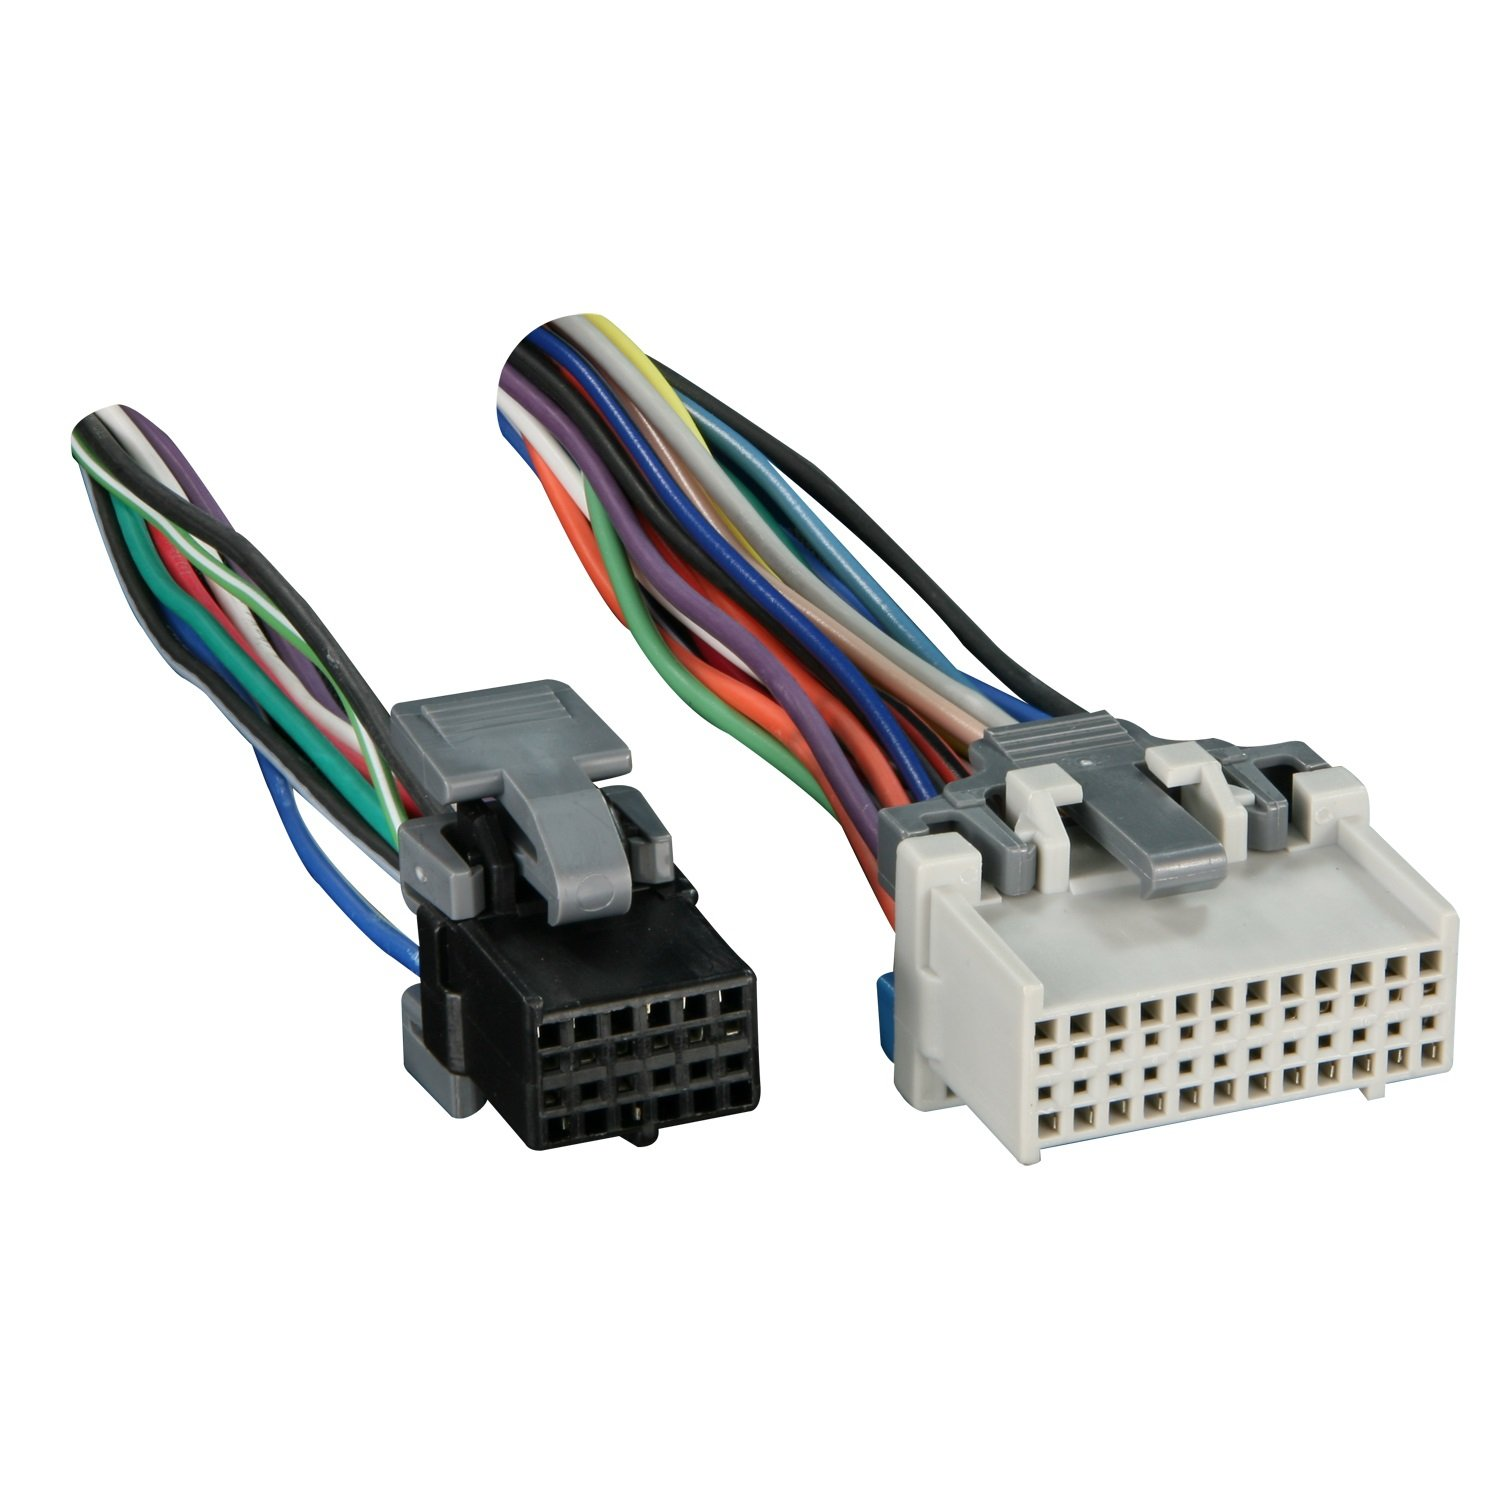 711log4bdML._SL1500_ amazon com metra turbowires 71 2003 1 wiring harness car electronics where to buy a trailer wiring harness at panicattacktreatment.co